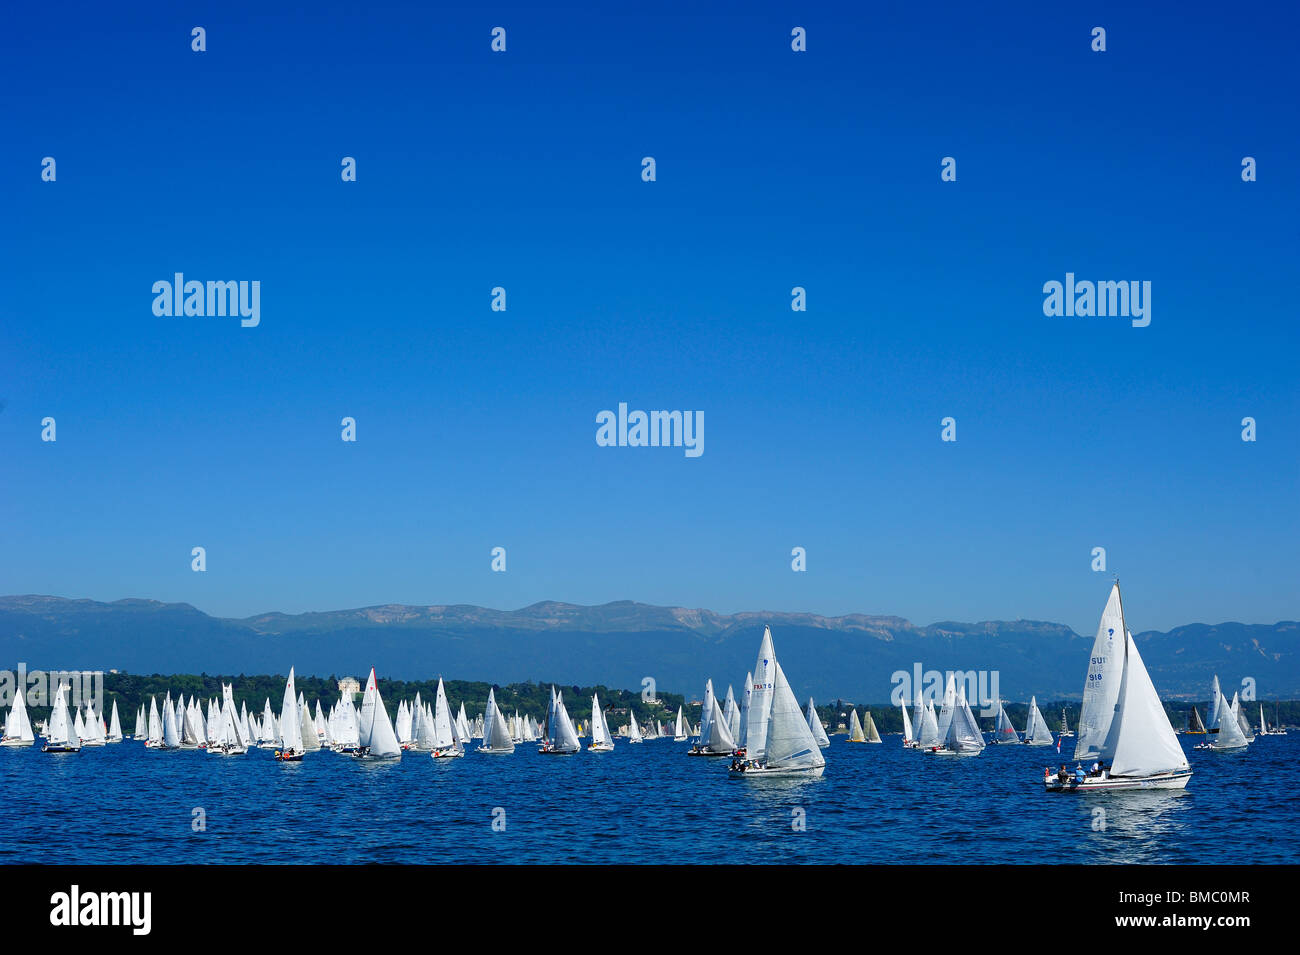 The start of the Bol d'Or yacht race on lac Leman (Lake Geneva) 2009 with the Jura mountains in the background. - Stock Image